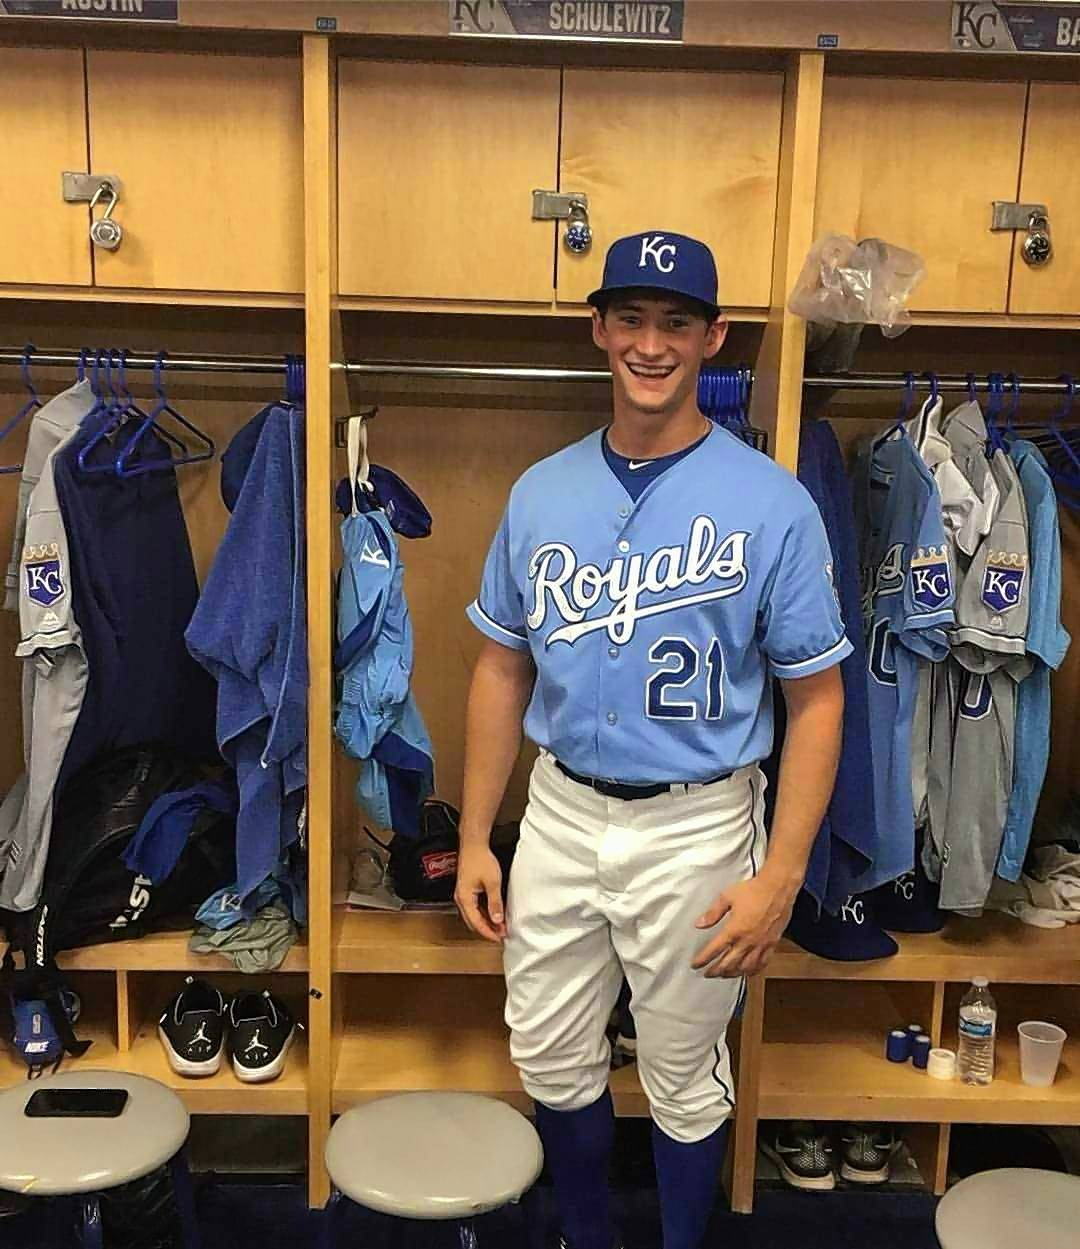 Former Mundelein pitcher Mitchell Schulewitz graduated from UIC this spring and is pitching in the Kansas City Royals organization.